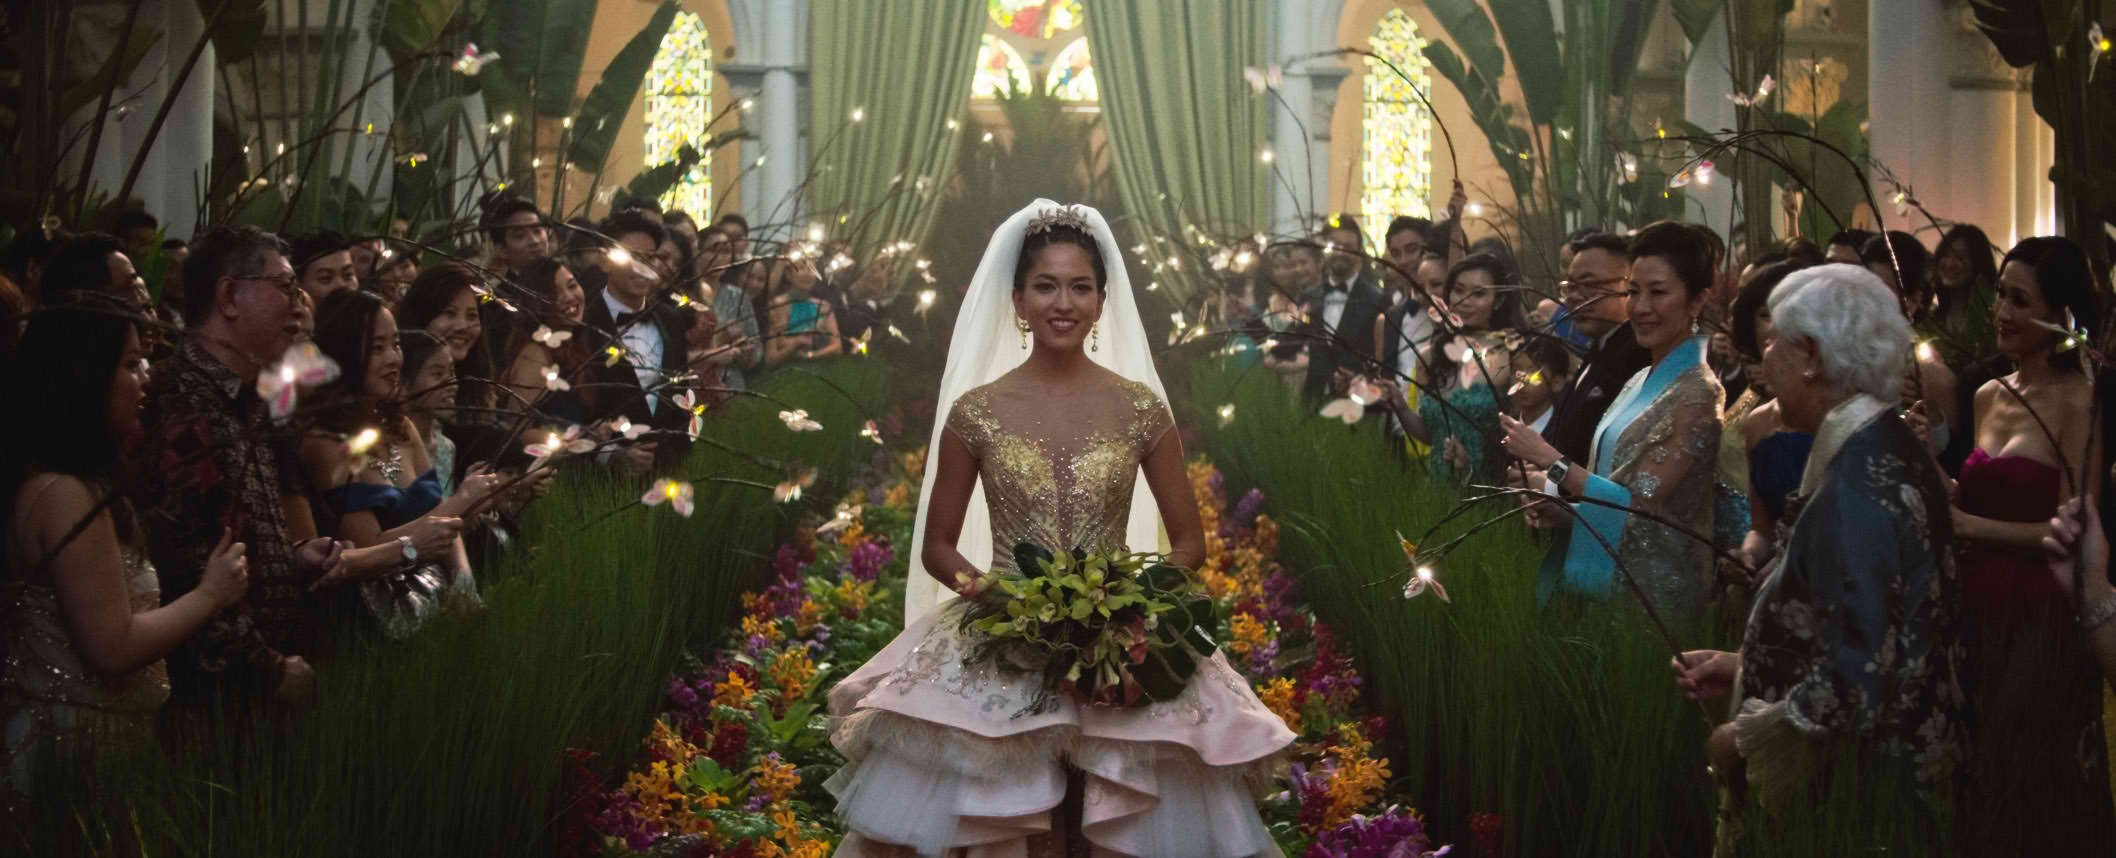 WEDDING OF THE YEAR. Araminta Lee walks down the aisle of the chapel at CHIJMES, now called CHIJMES Hall, a function space that was elaborately decorated for the movie. Photo courtesy of Warner Bros Pictures